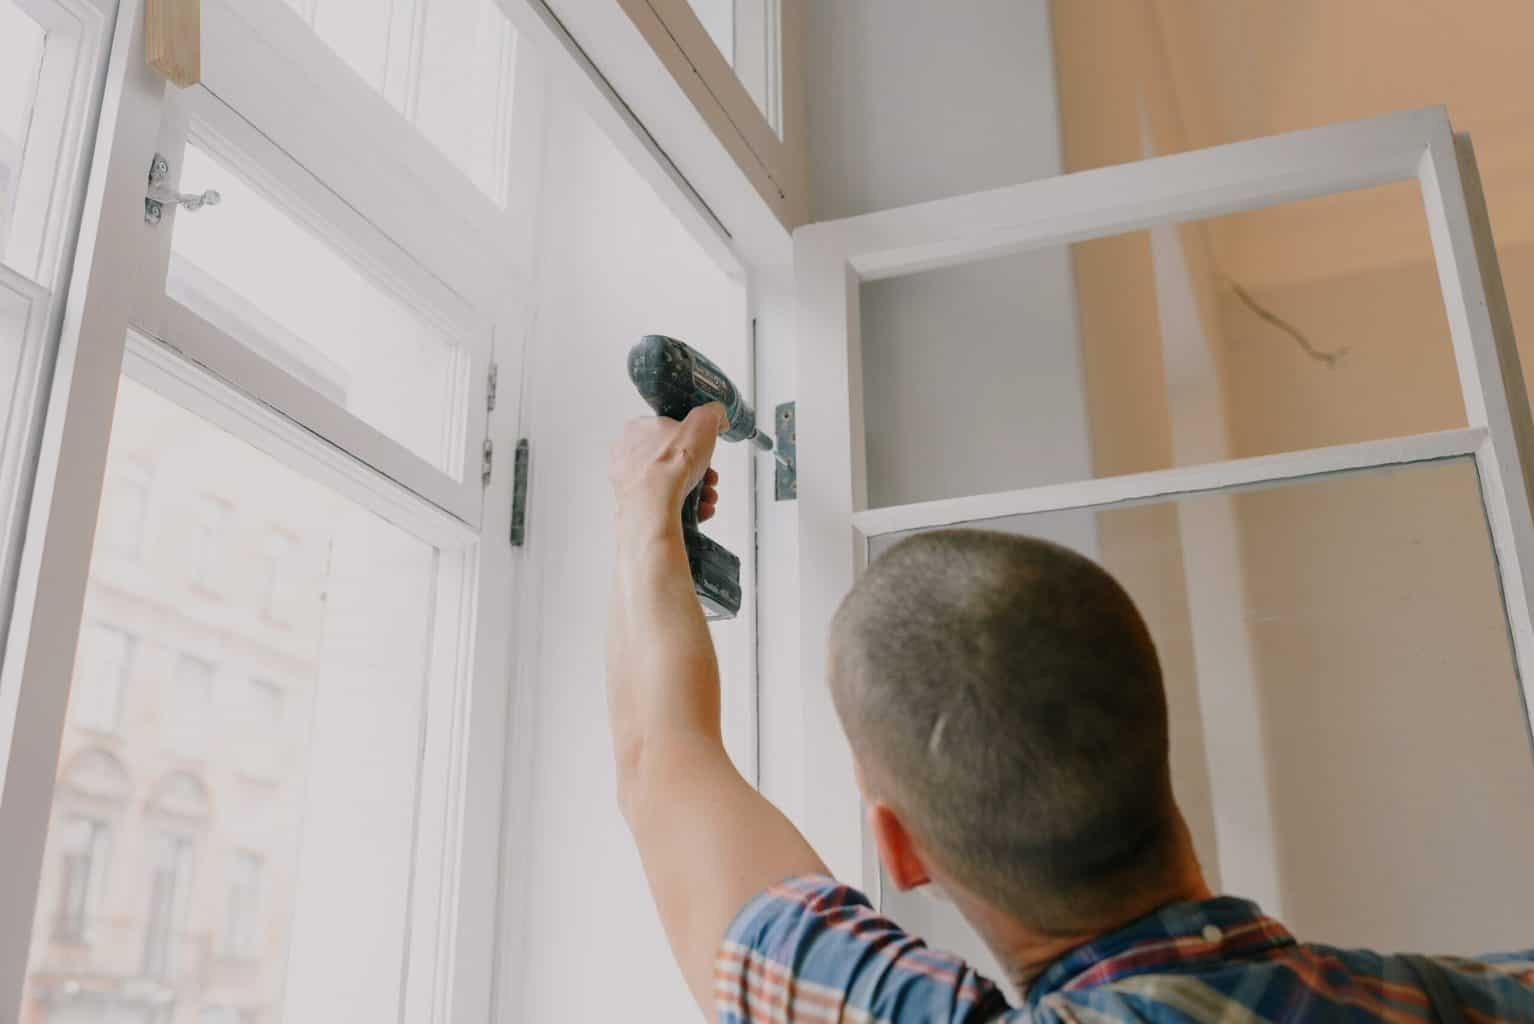 A man drilling with a door screw